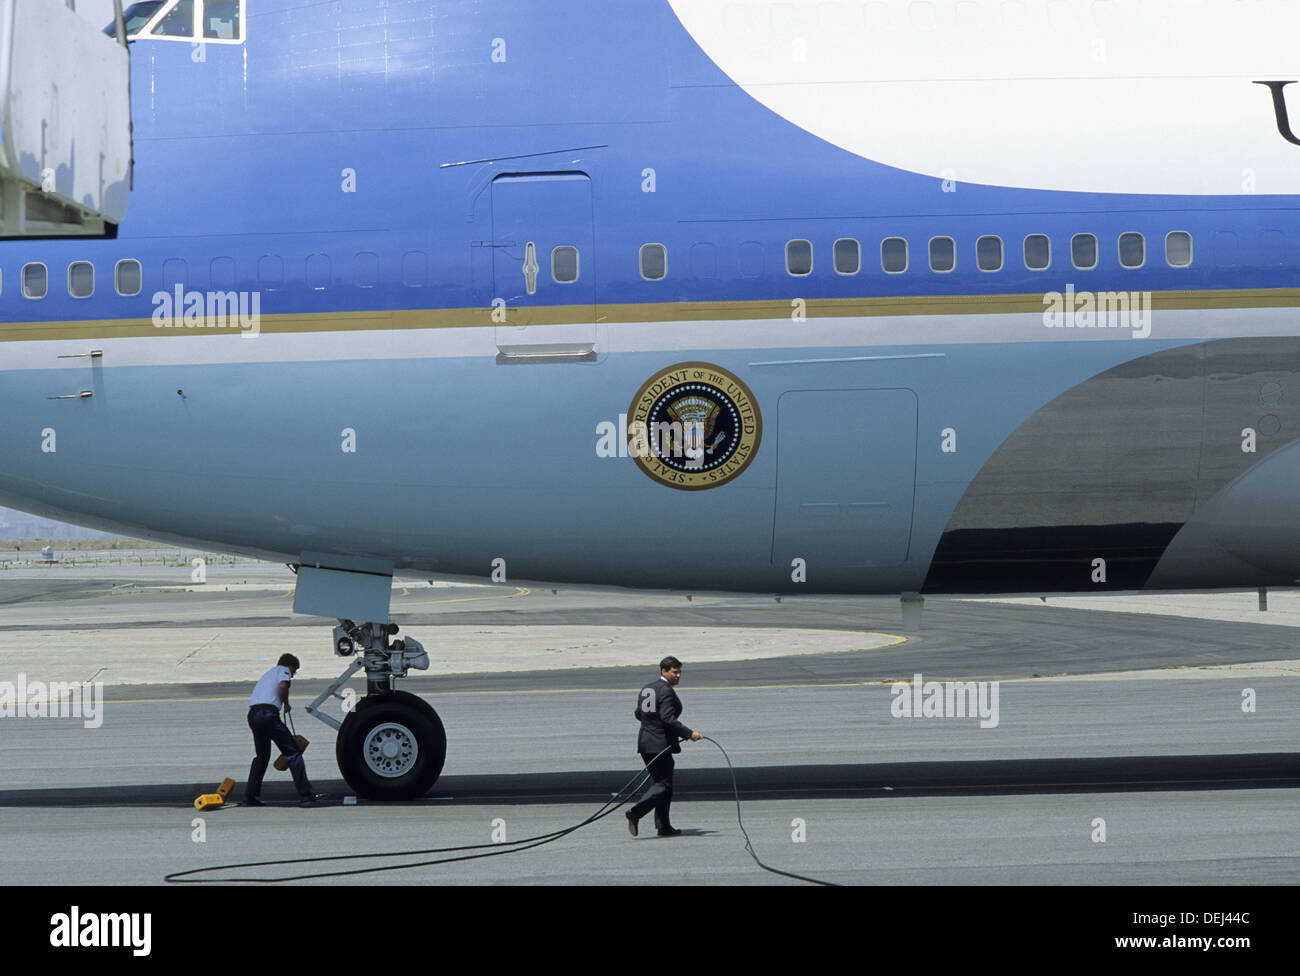 Air Force One, Presidential Plane, San Francisco, California - Stock Image